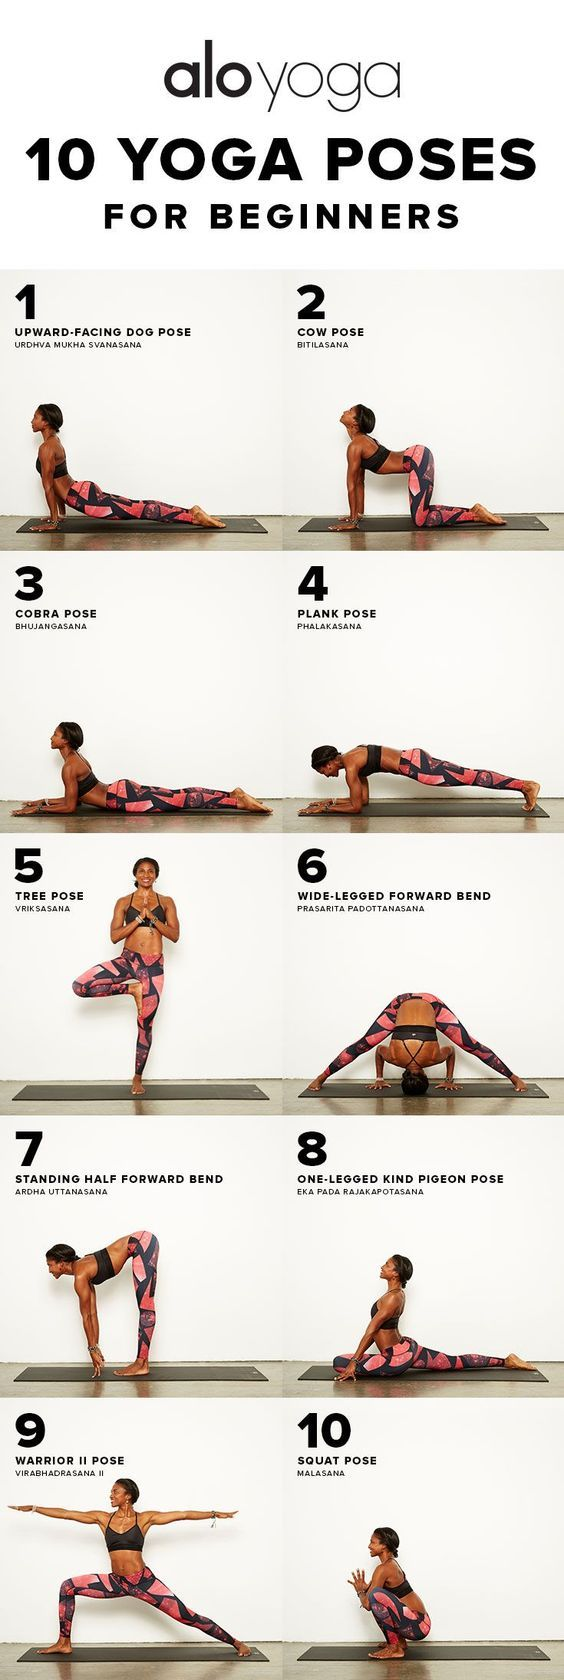 DownDog Yoga Poses for Fun & Fitness: 10 Yoga Poses for Beginners. From the Downdog Diary Yoga Blog found exclusively at DownDog Boutique http://amzn.to/2ssKnYB